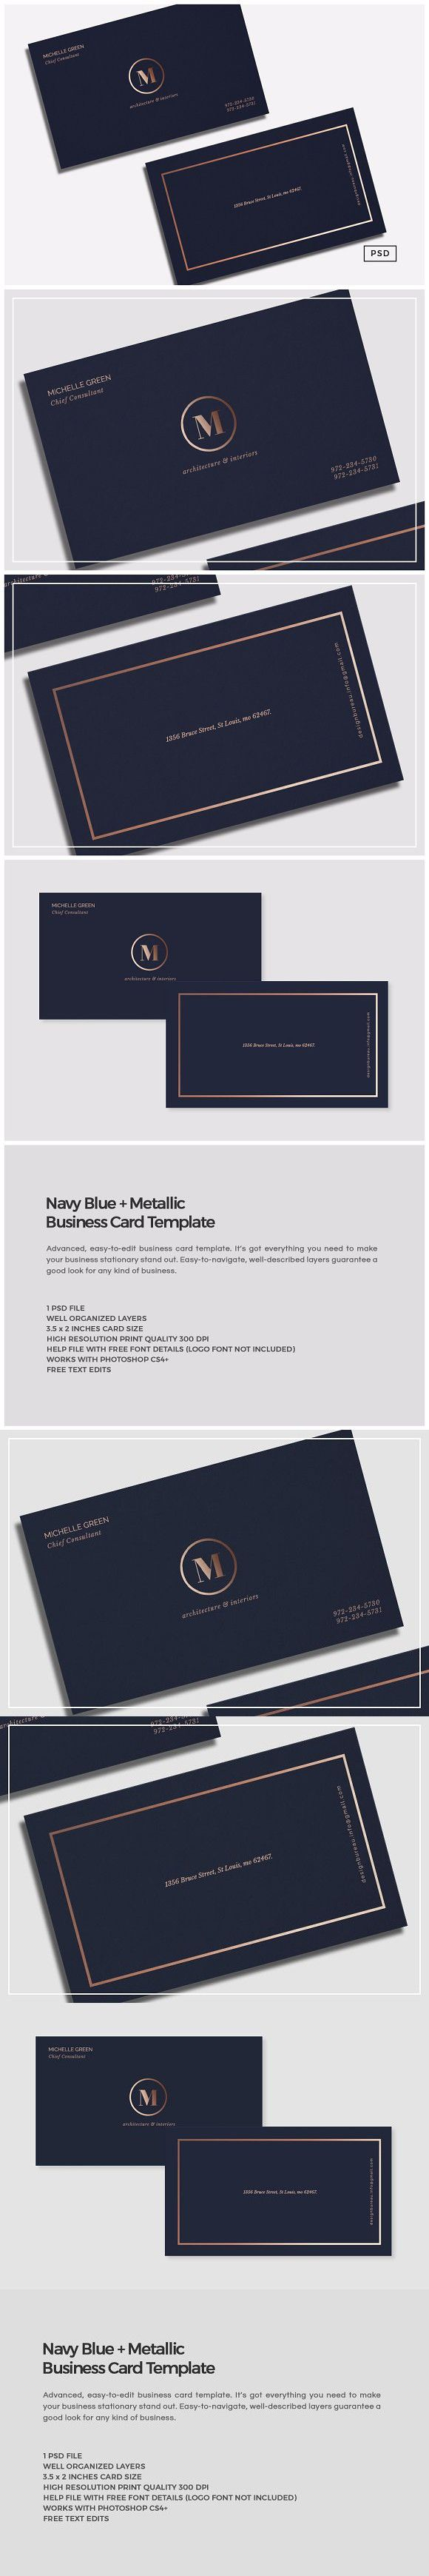 436 best busy business card images on pinterest business cards navy blue metallic business card creative business card templates magicingreecefo Images